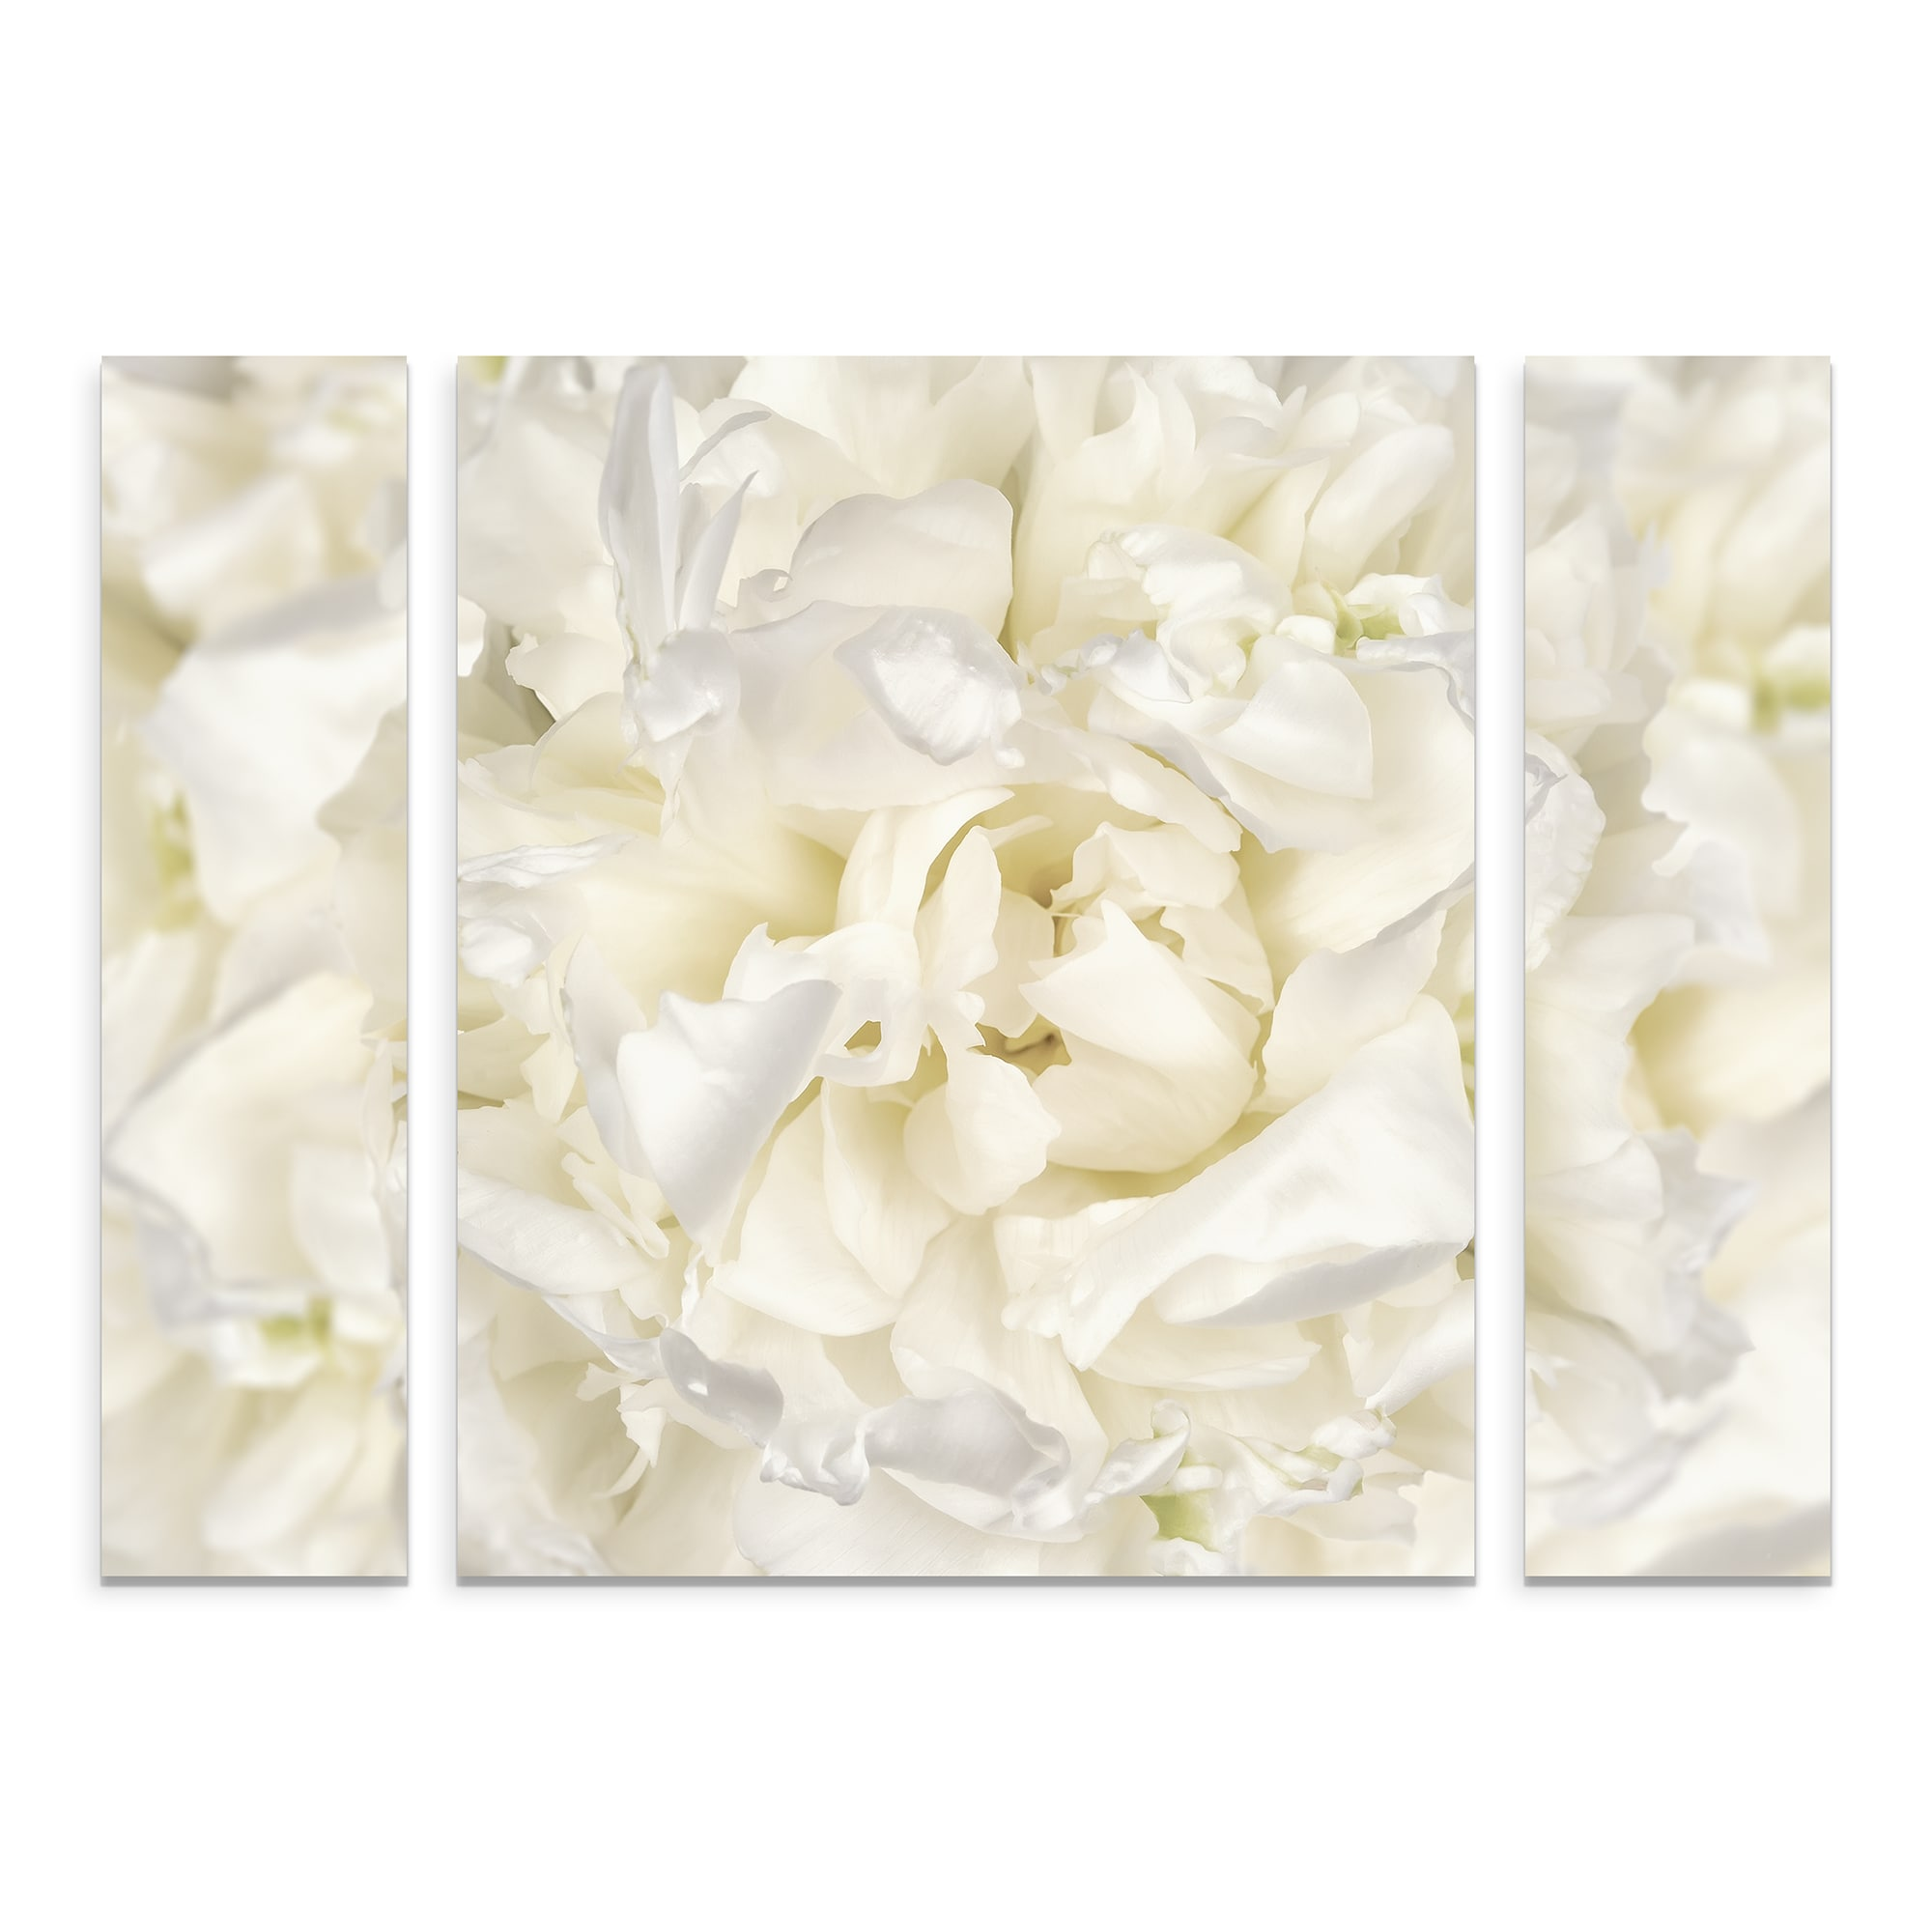 Trademark Fine Art Cora Niele White Peony Flower Large Multi Panel Canvas Art Set